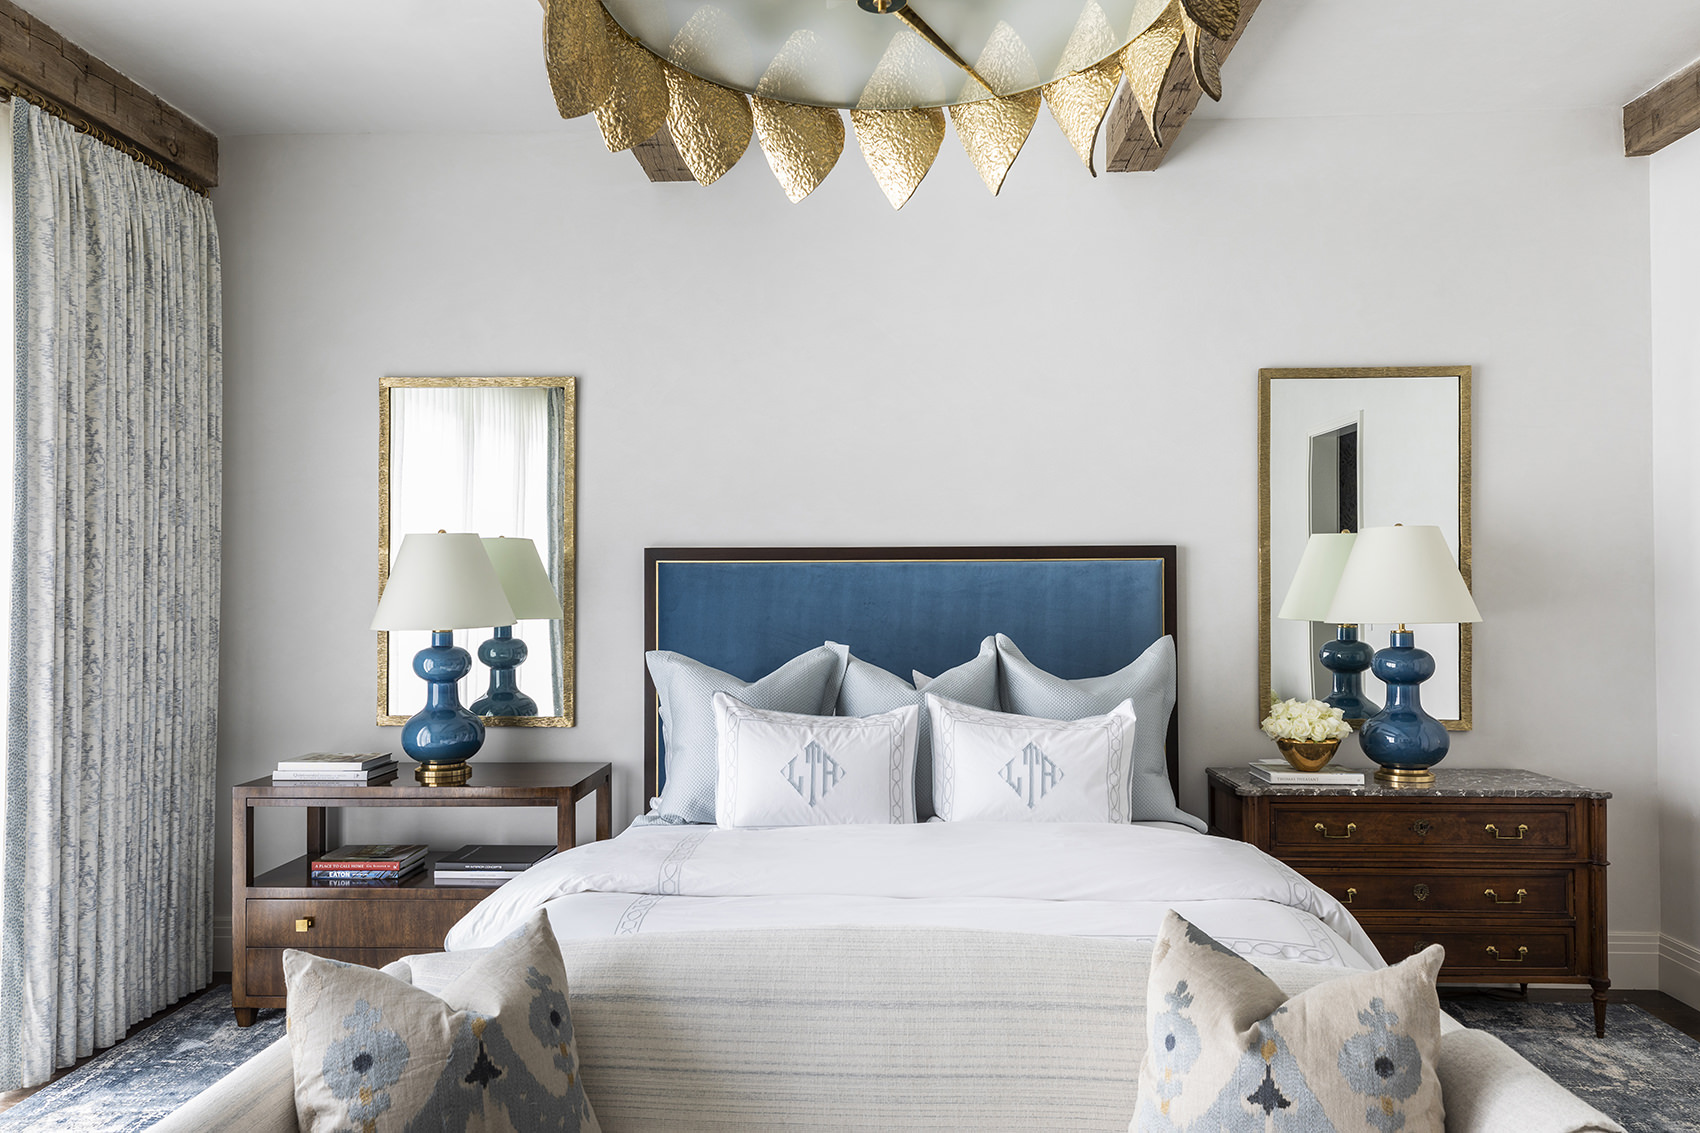 custom bedroom with gold an blue accents